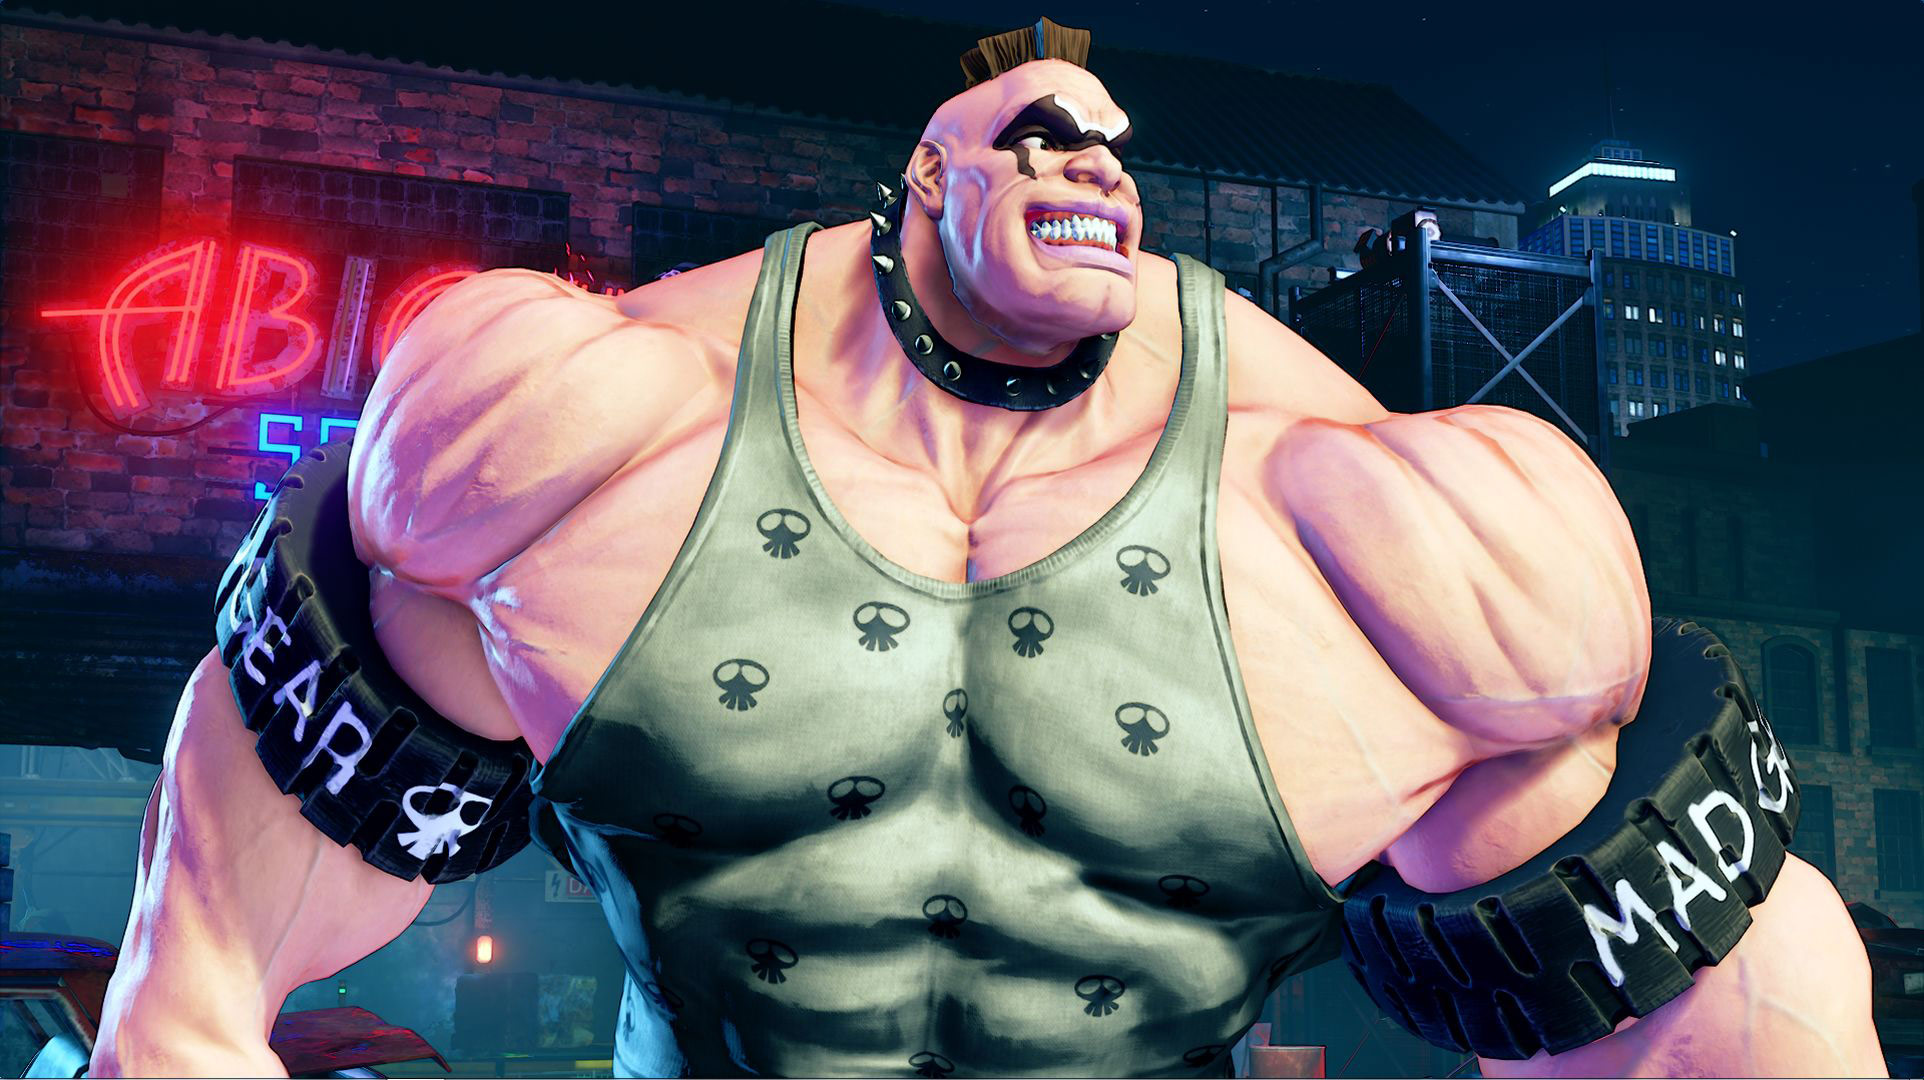 Abigail Street Fighter 5 4 out of 13 image gallery